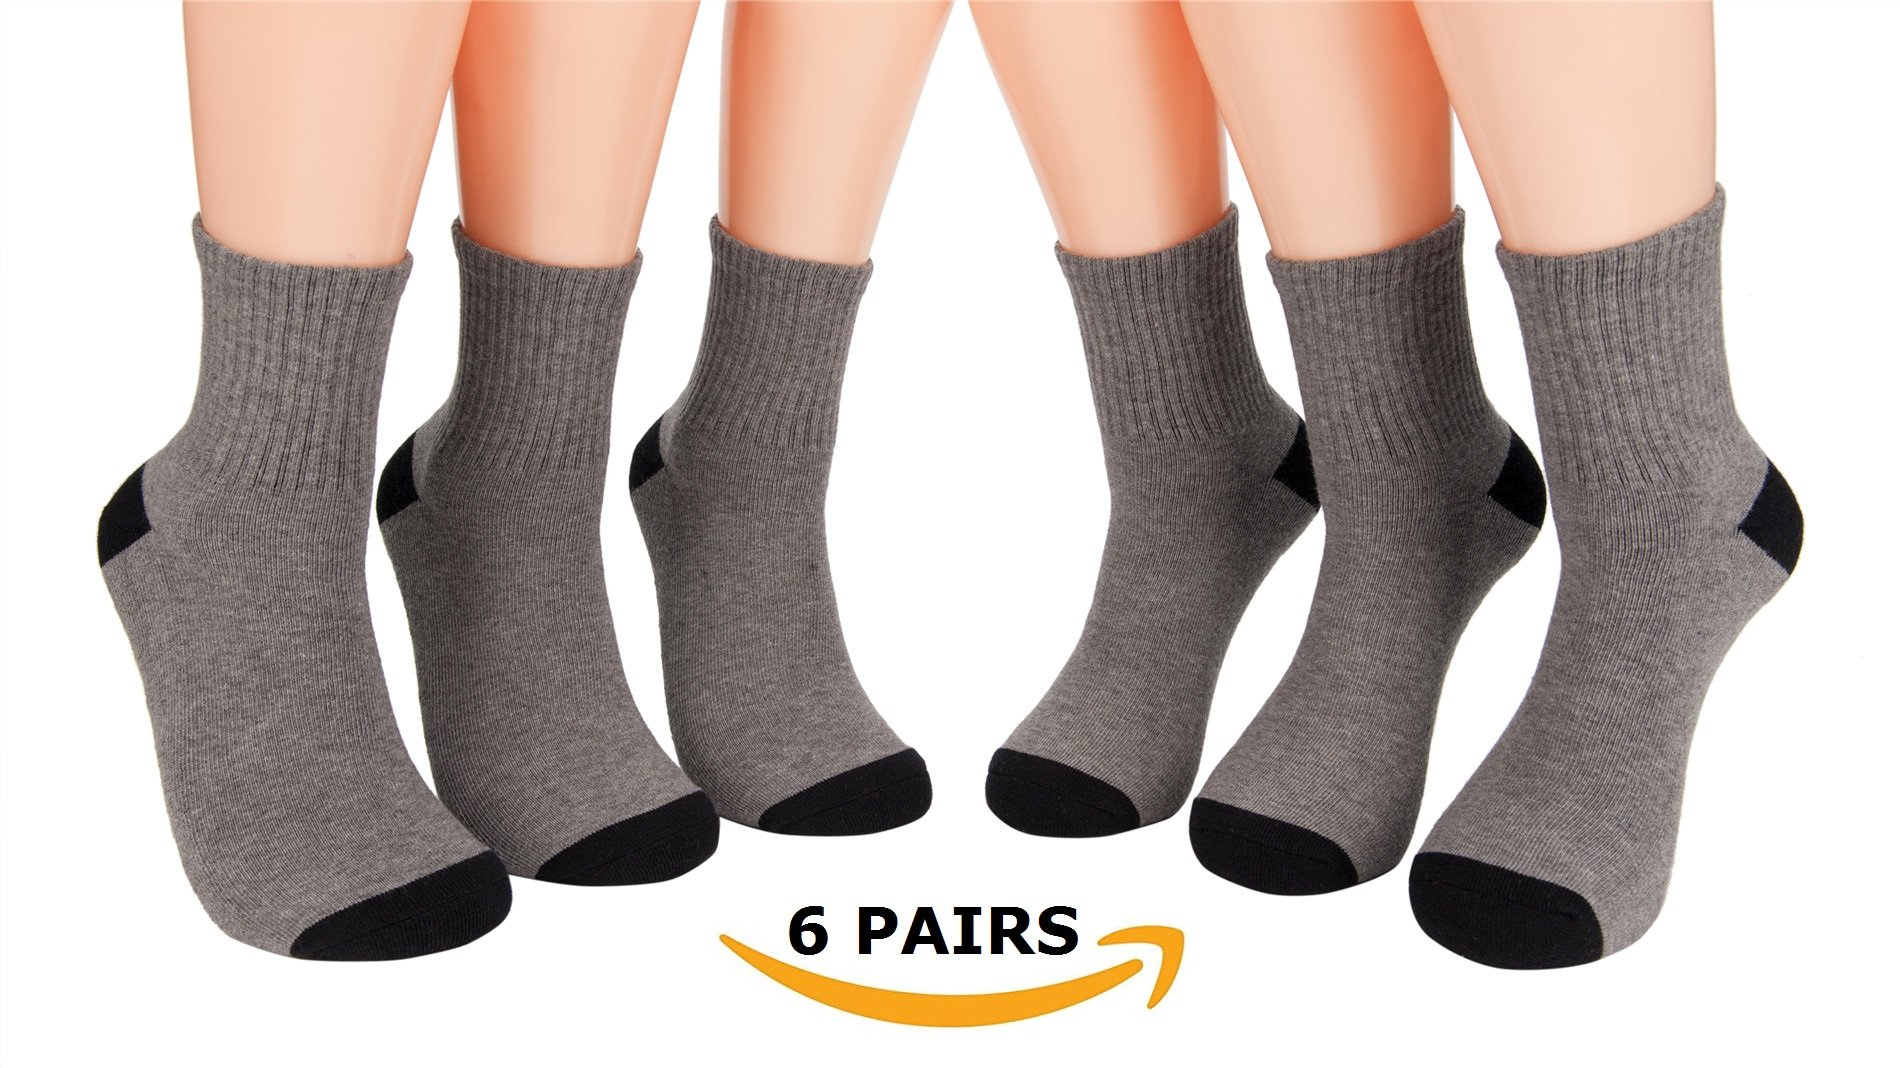 YESYEES 6-Pairs Men's Socks Cushioned Work Sport Training Socks (Quarter Socks Grey)